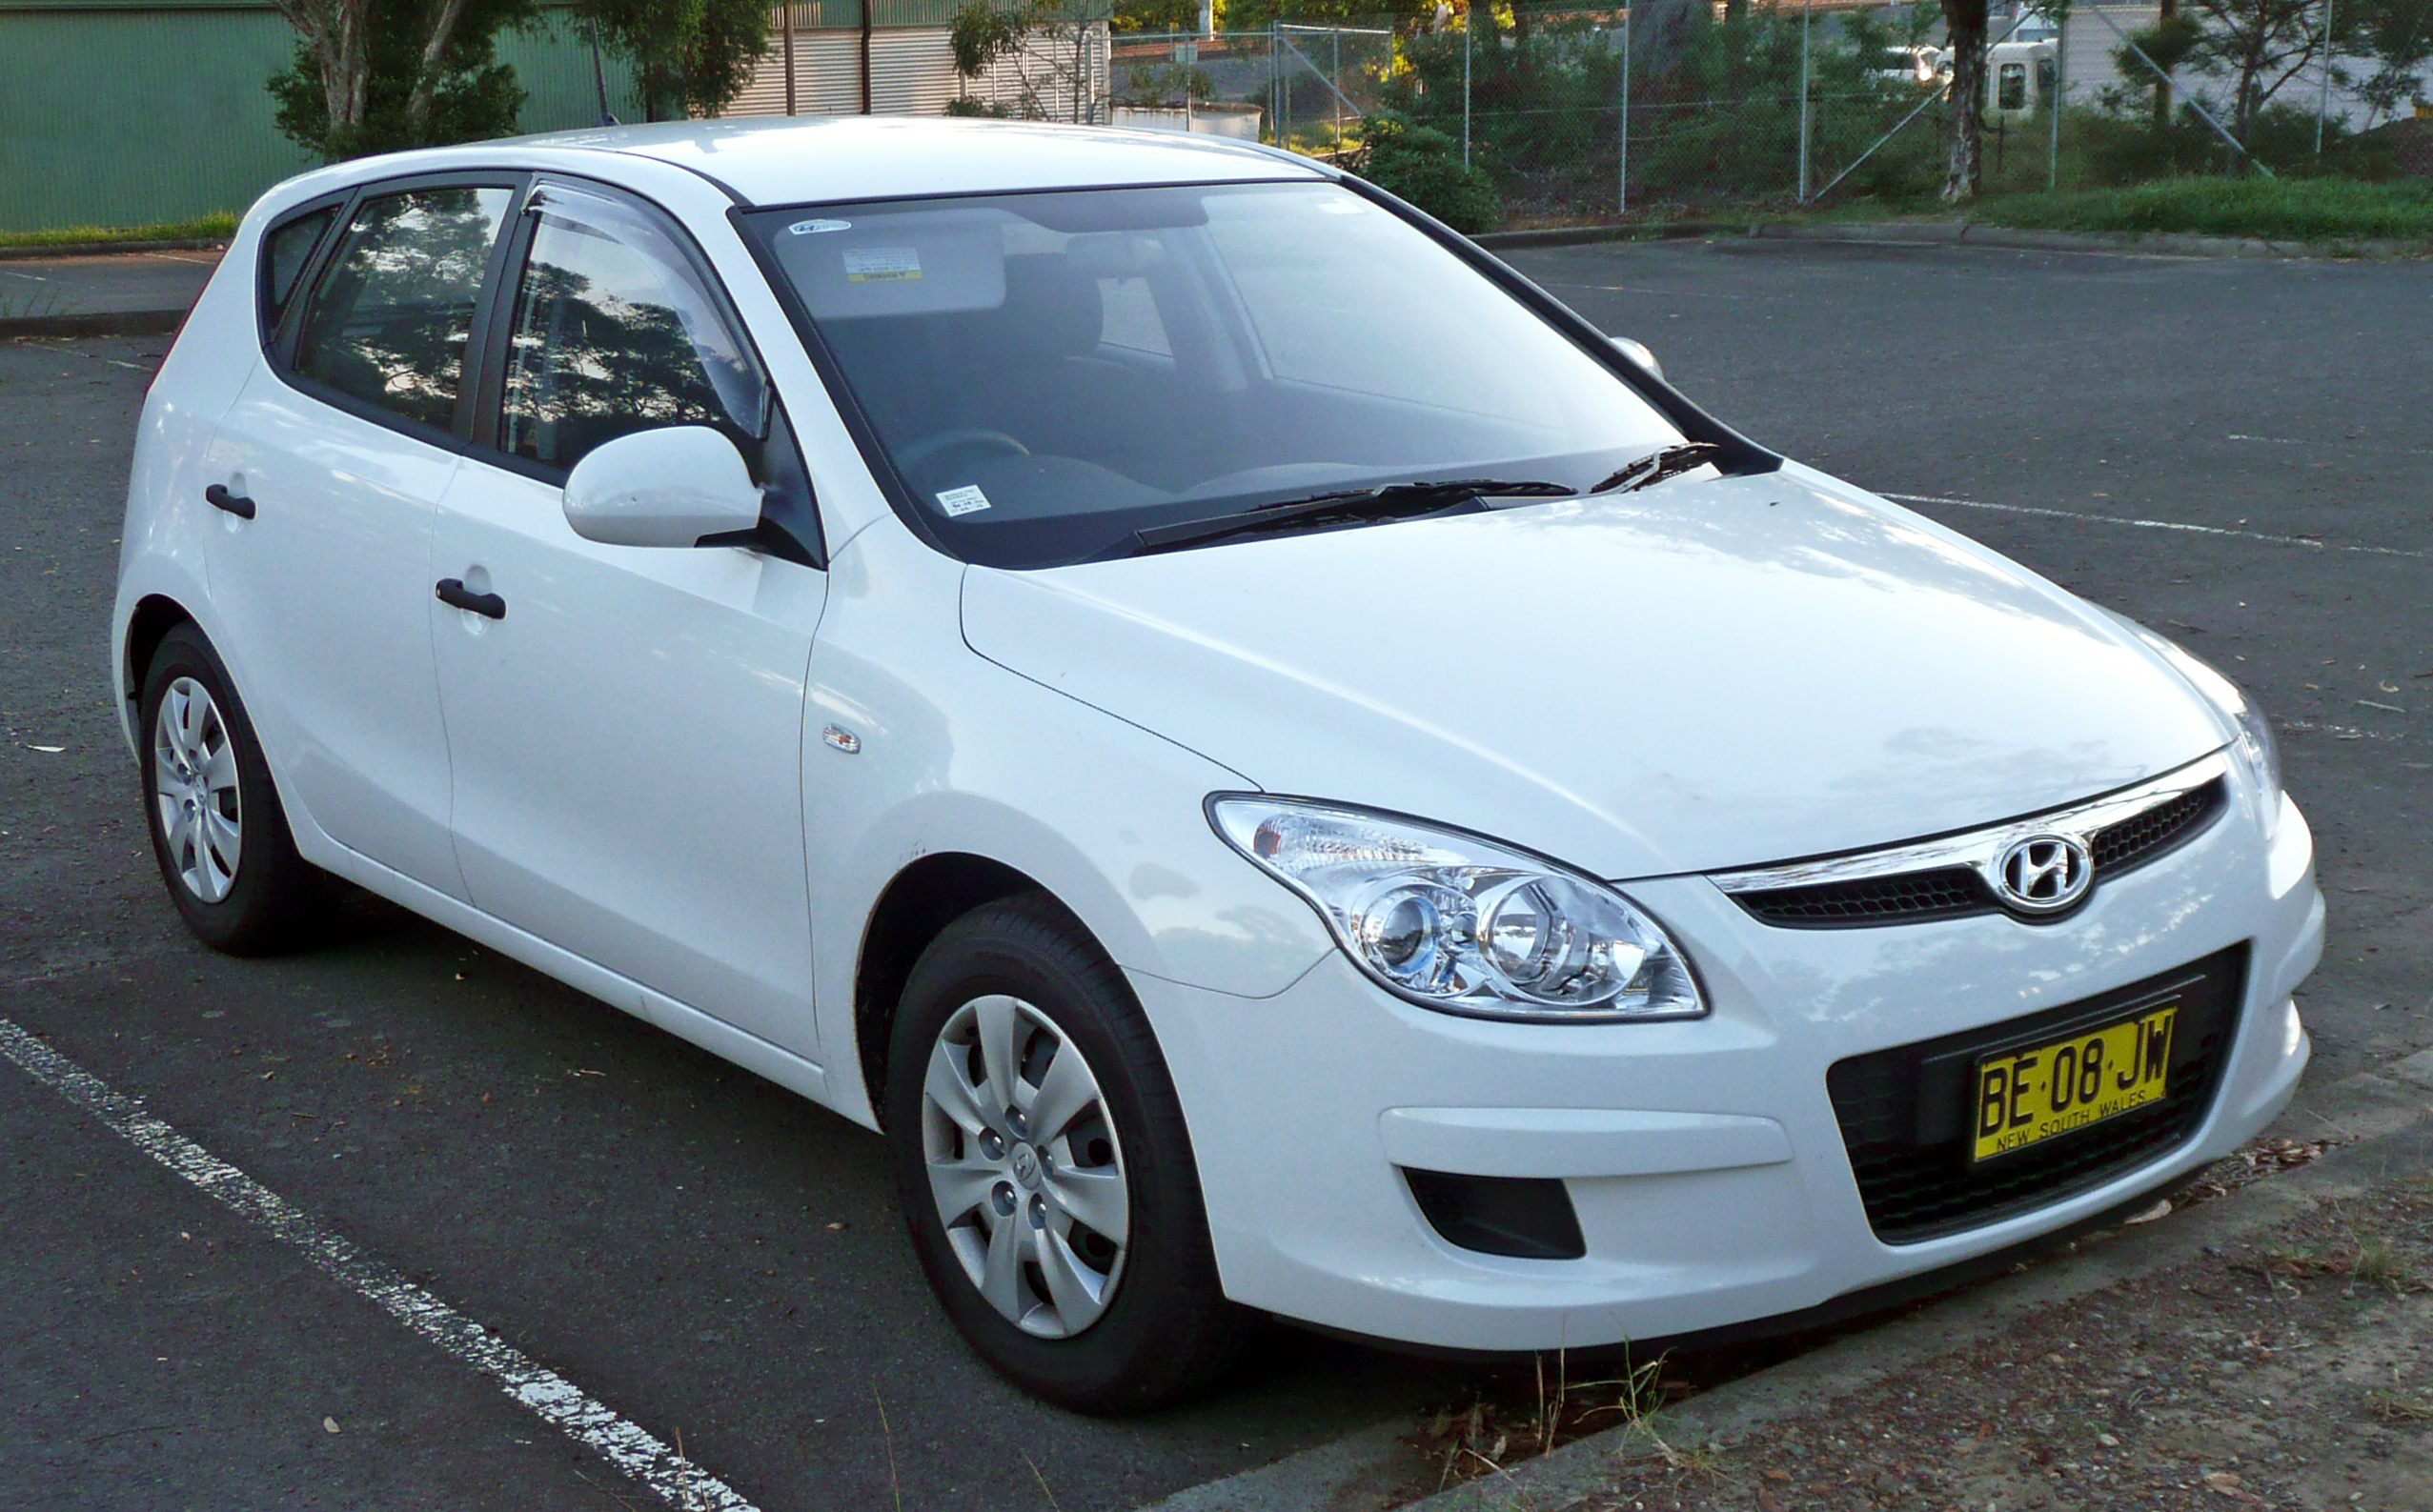 Hatchback Cars Without Rad Tax